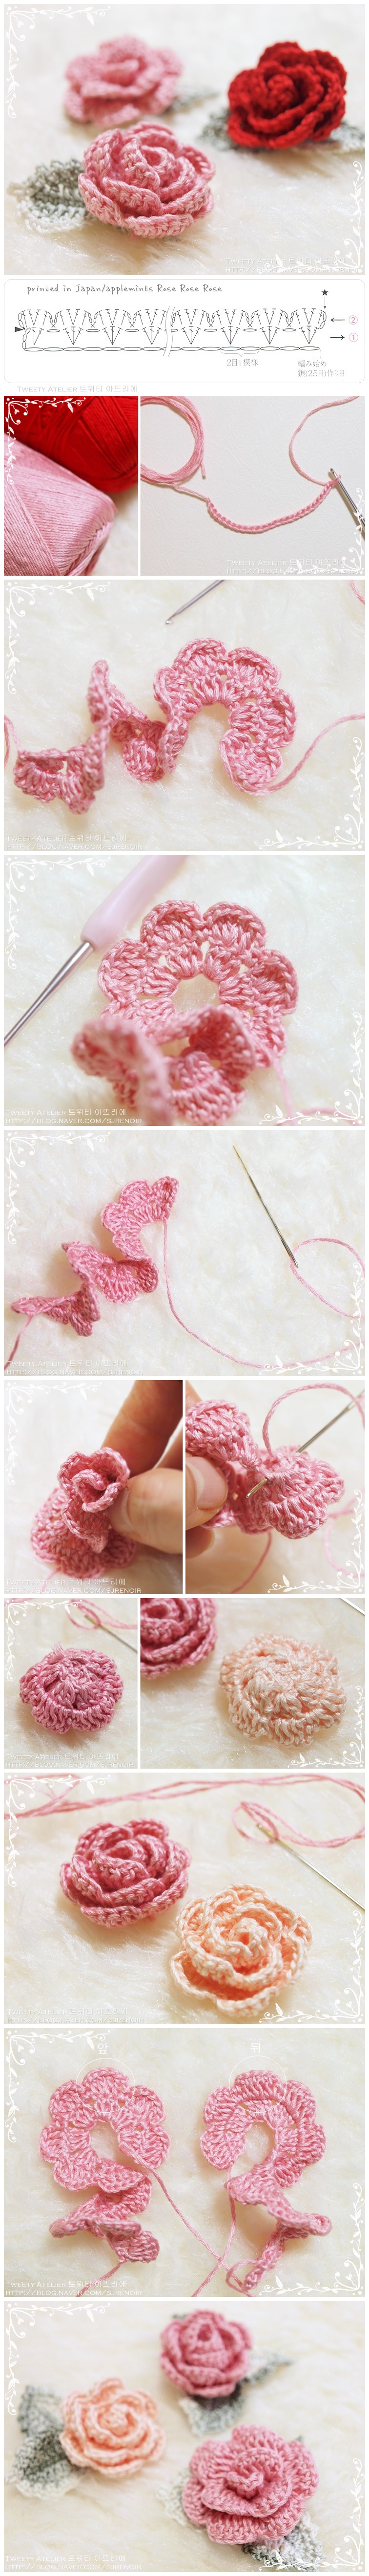 How-to-make-hand-knitted-rose